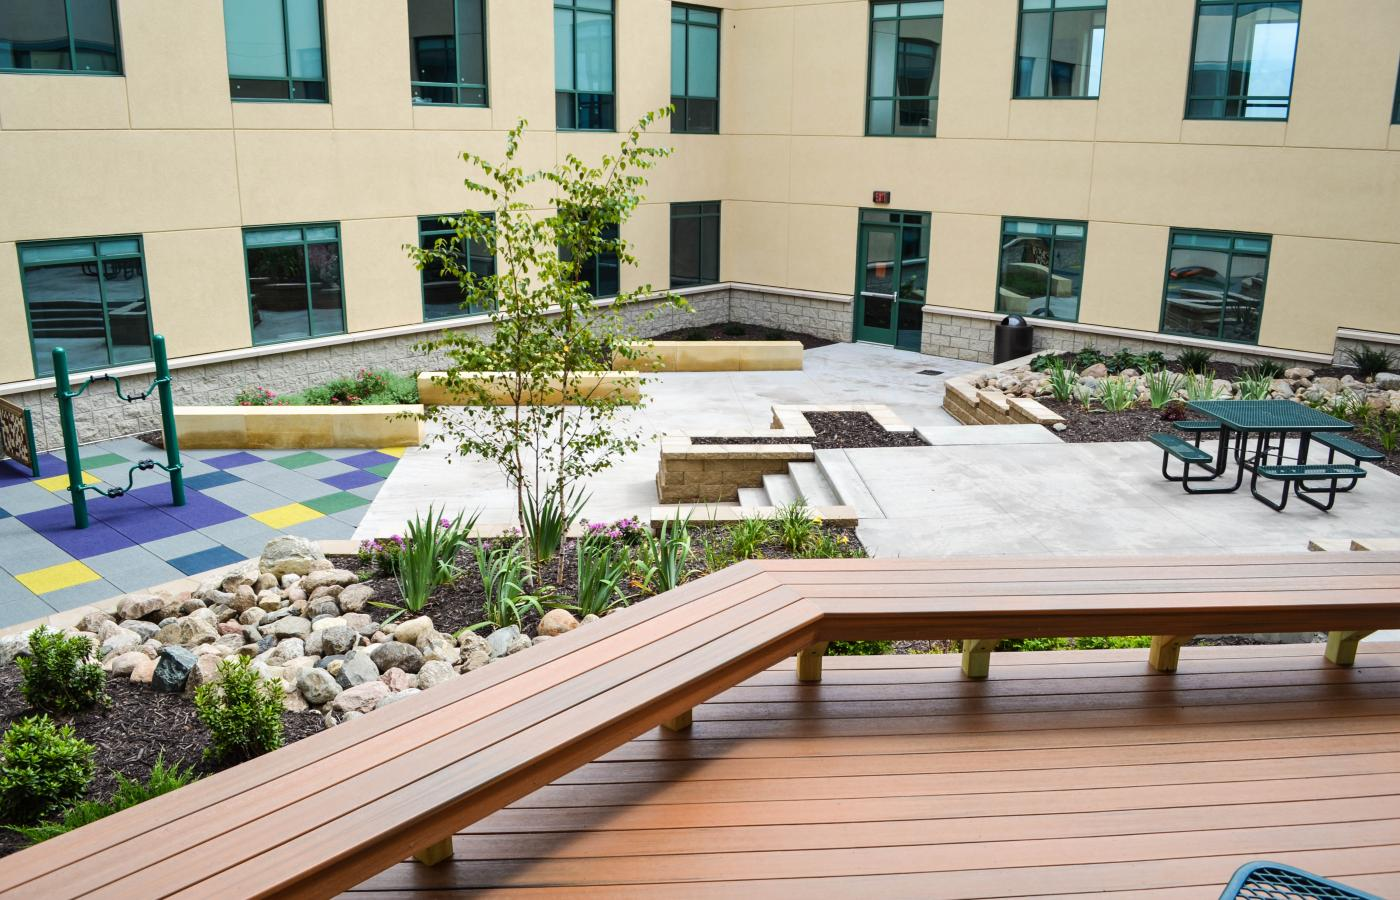 Fairview Medical Center Courtyard - 2